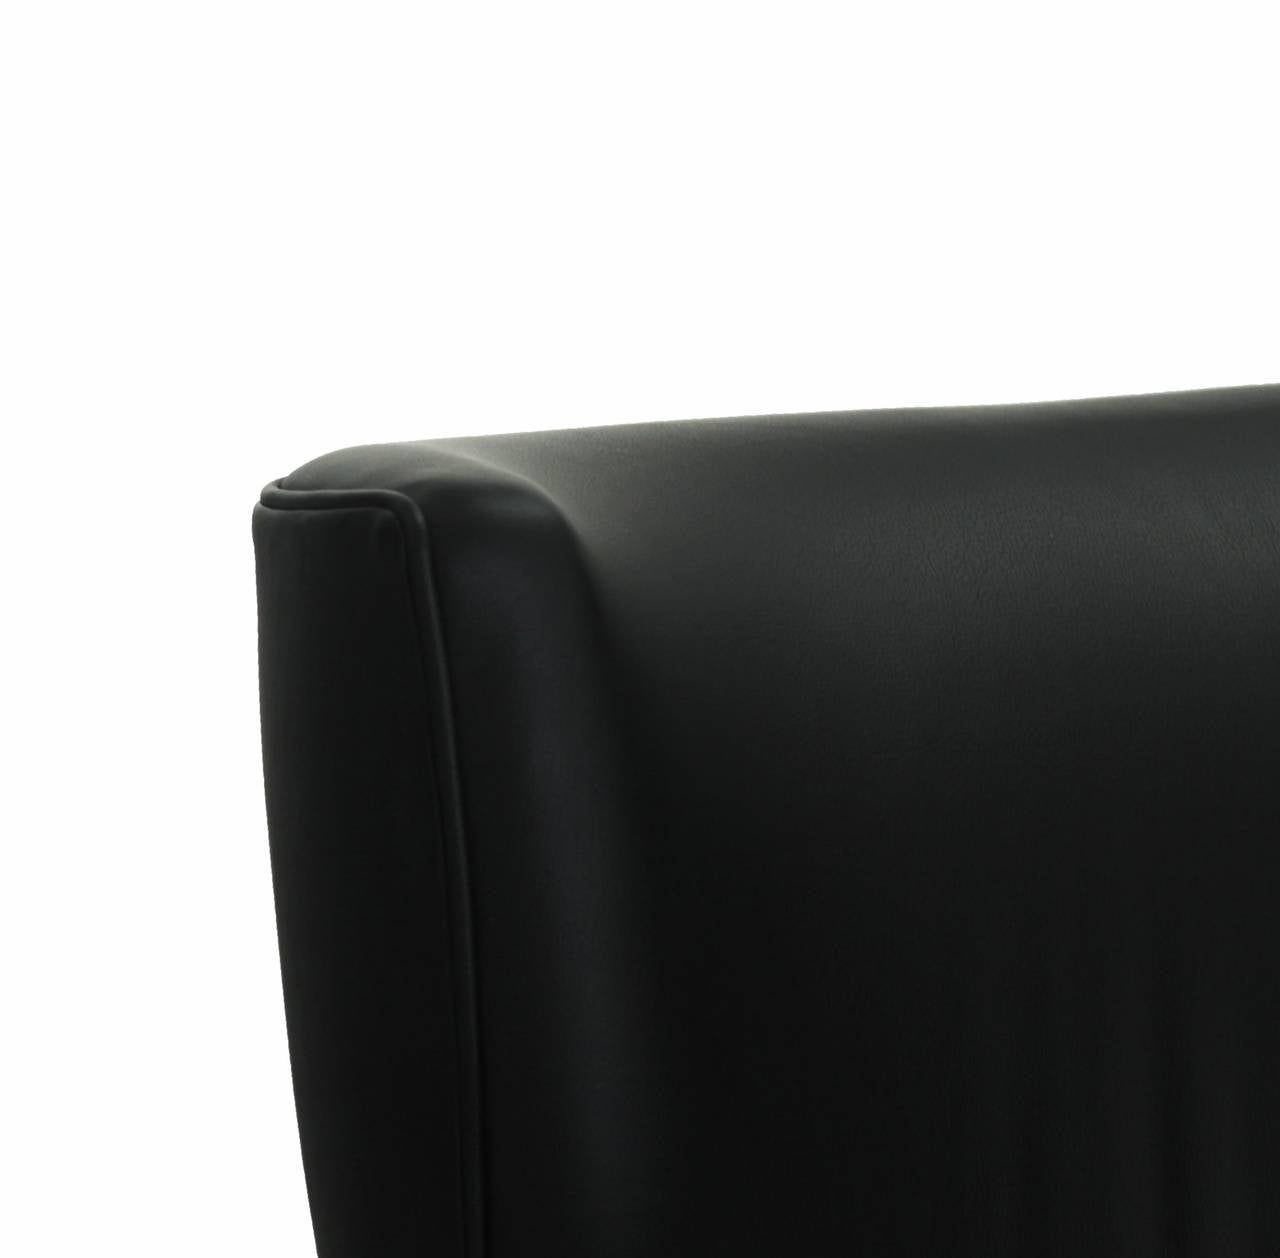 Black Leather Armchair Club Chair with Lathed Wood Legs by Joaquim Tenreiro For Sale 5